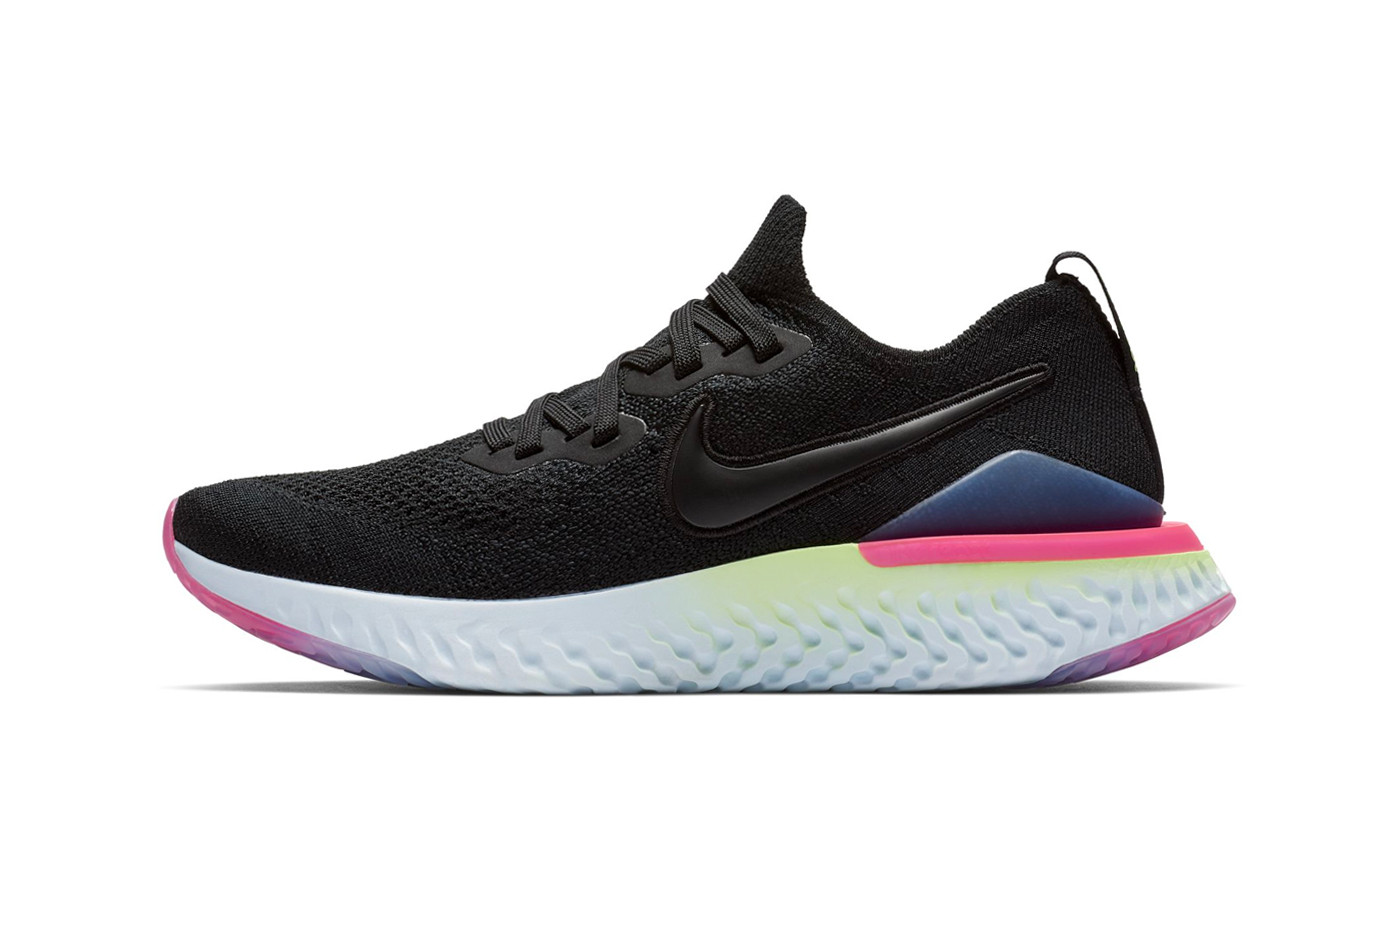 Nike Epic React Flyknit 2 First Look